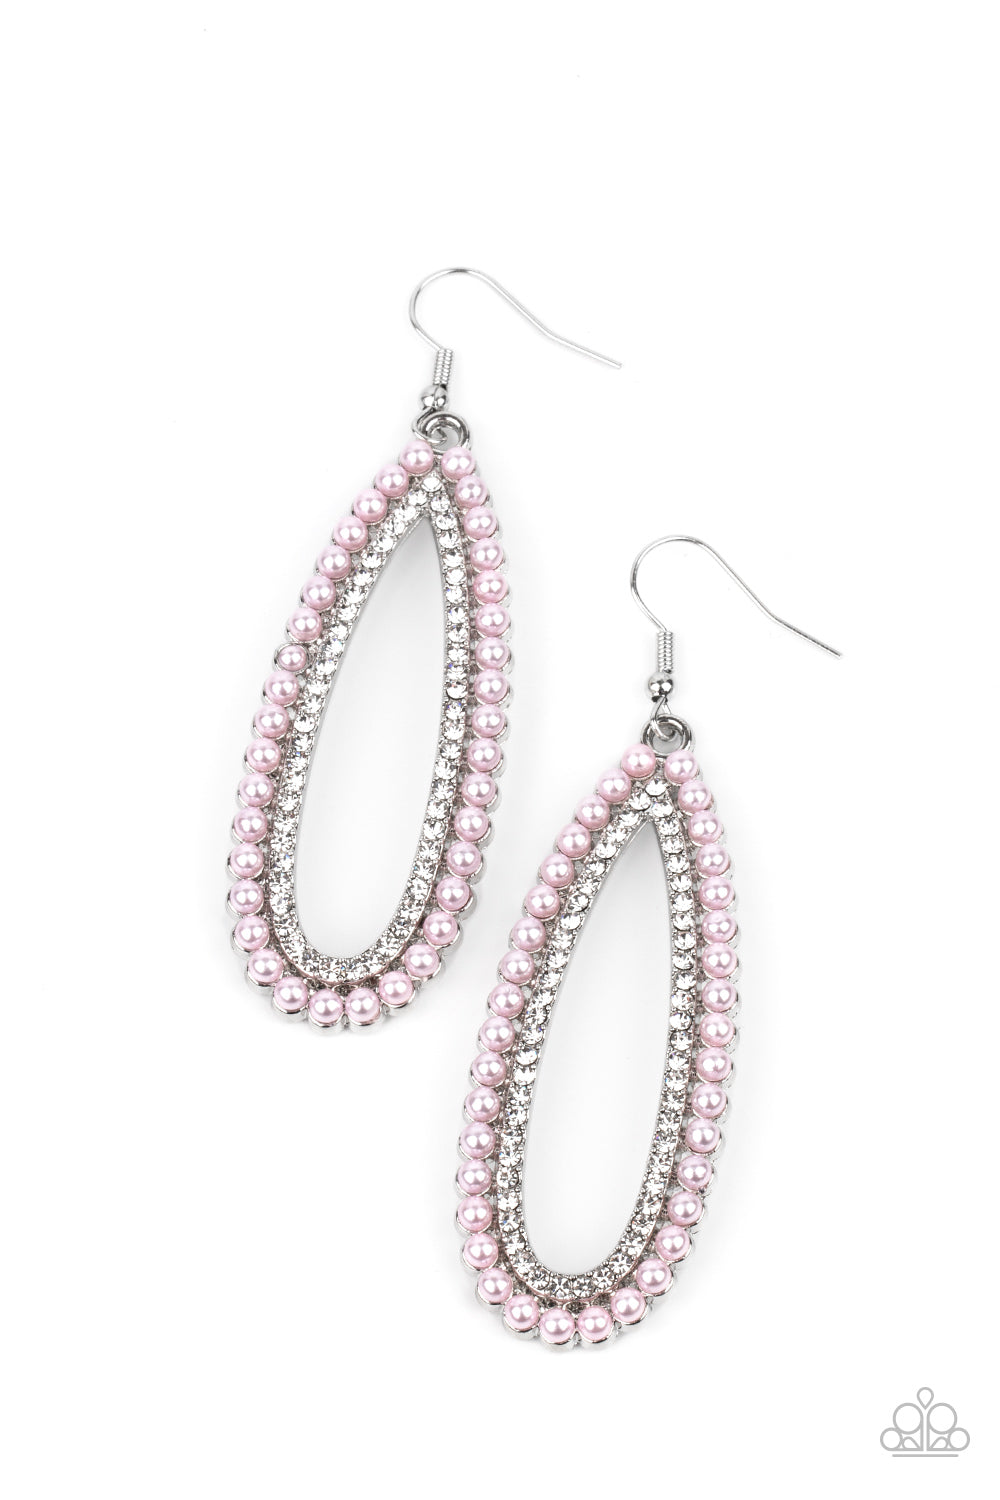 five-dollar-jewelry-glamorously-glowing-pink-earrings-paparazzi-accessories